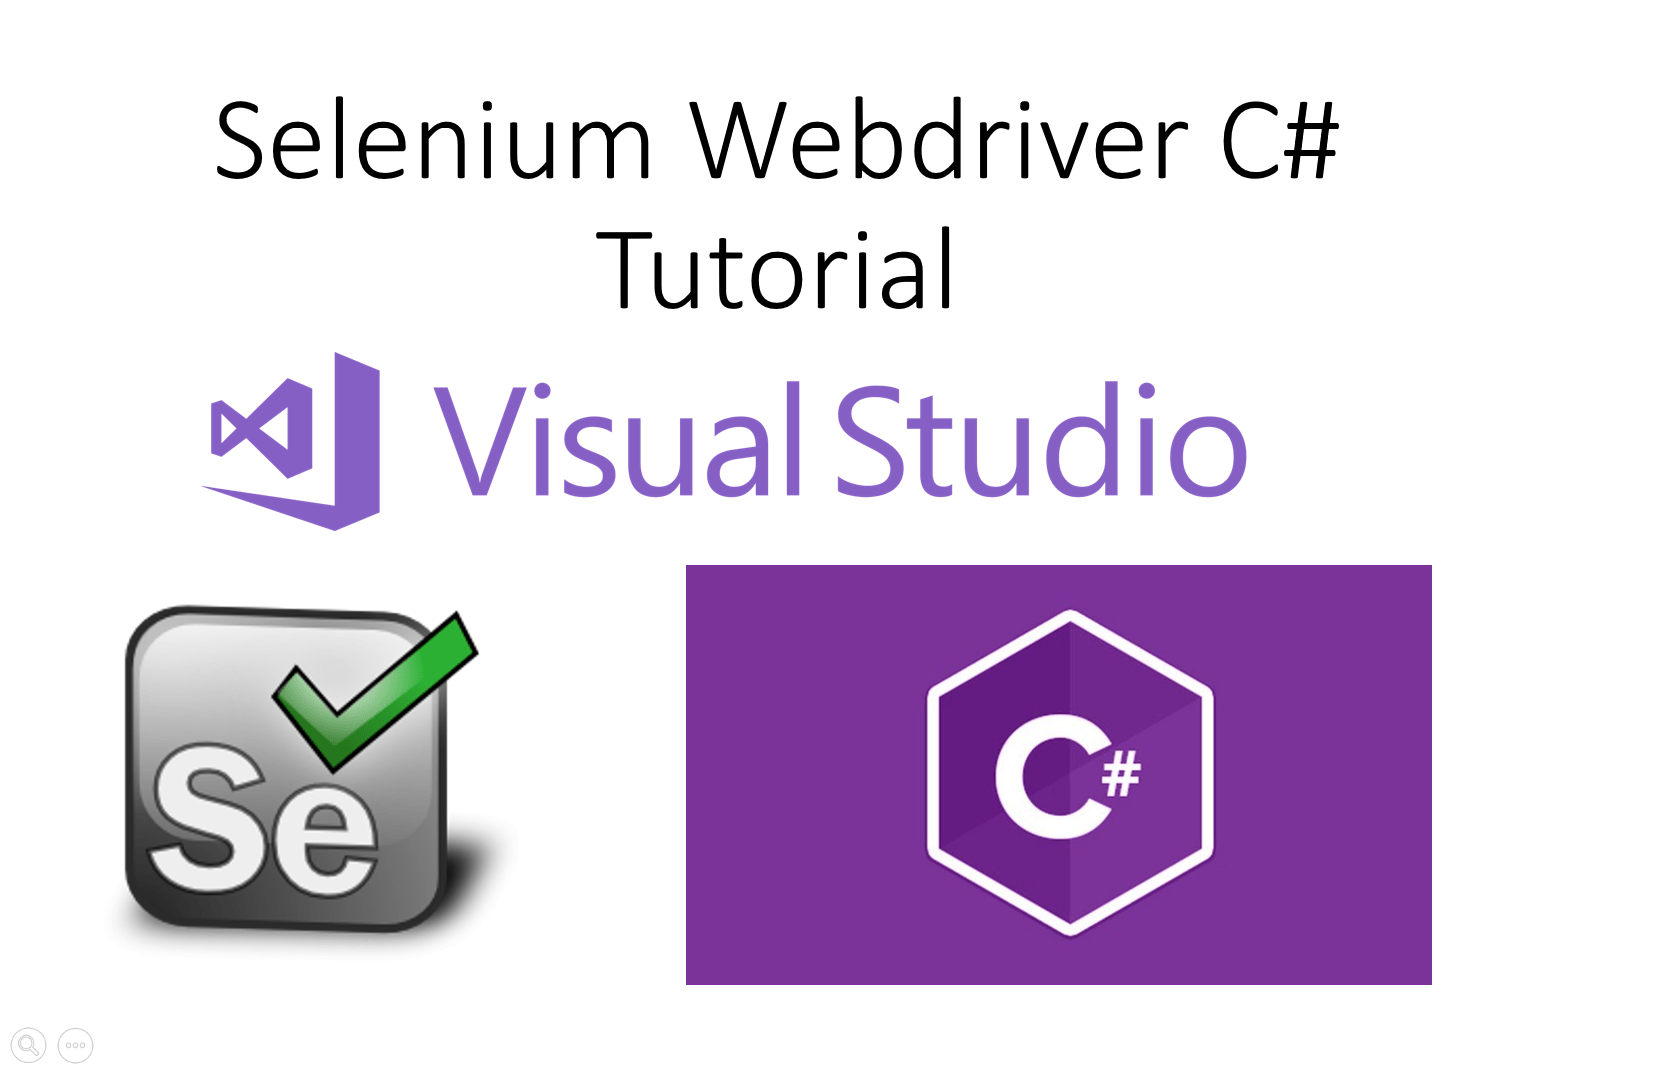 Selenium Webdriver C# Tutorial with Step by Step Process